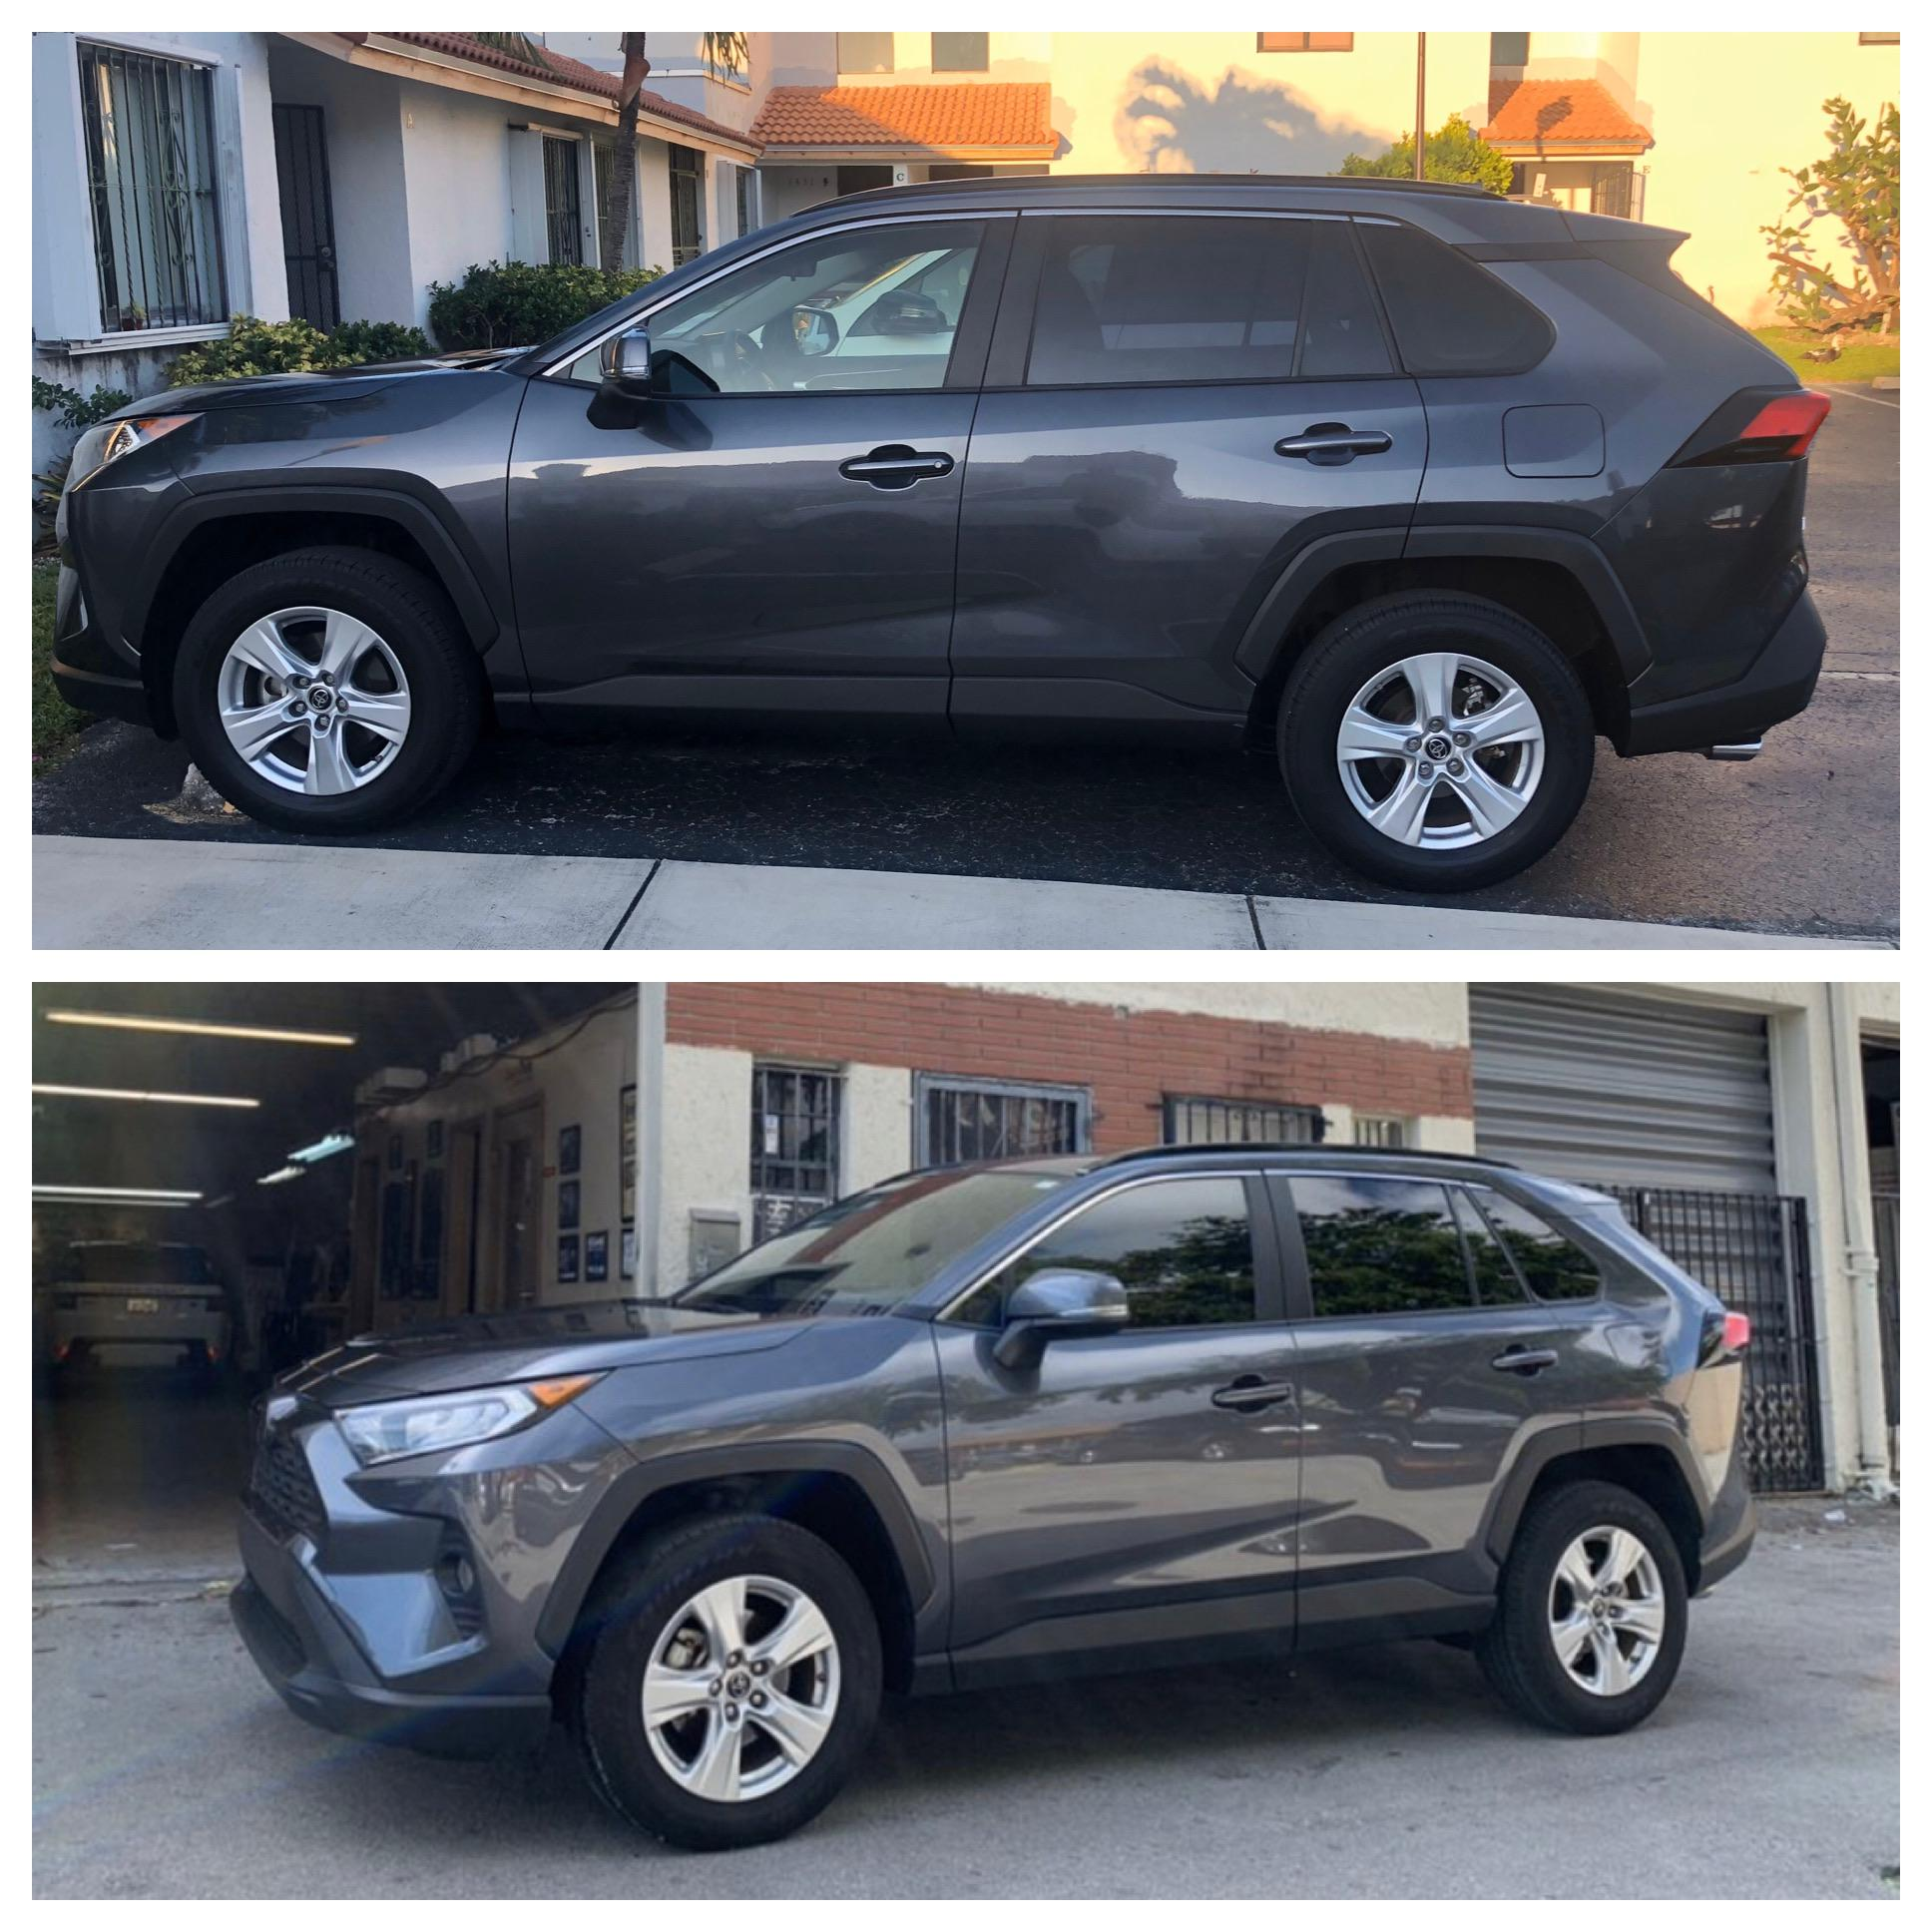 2019 Xle Window Tint Before After Rav4club